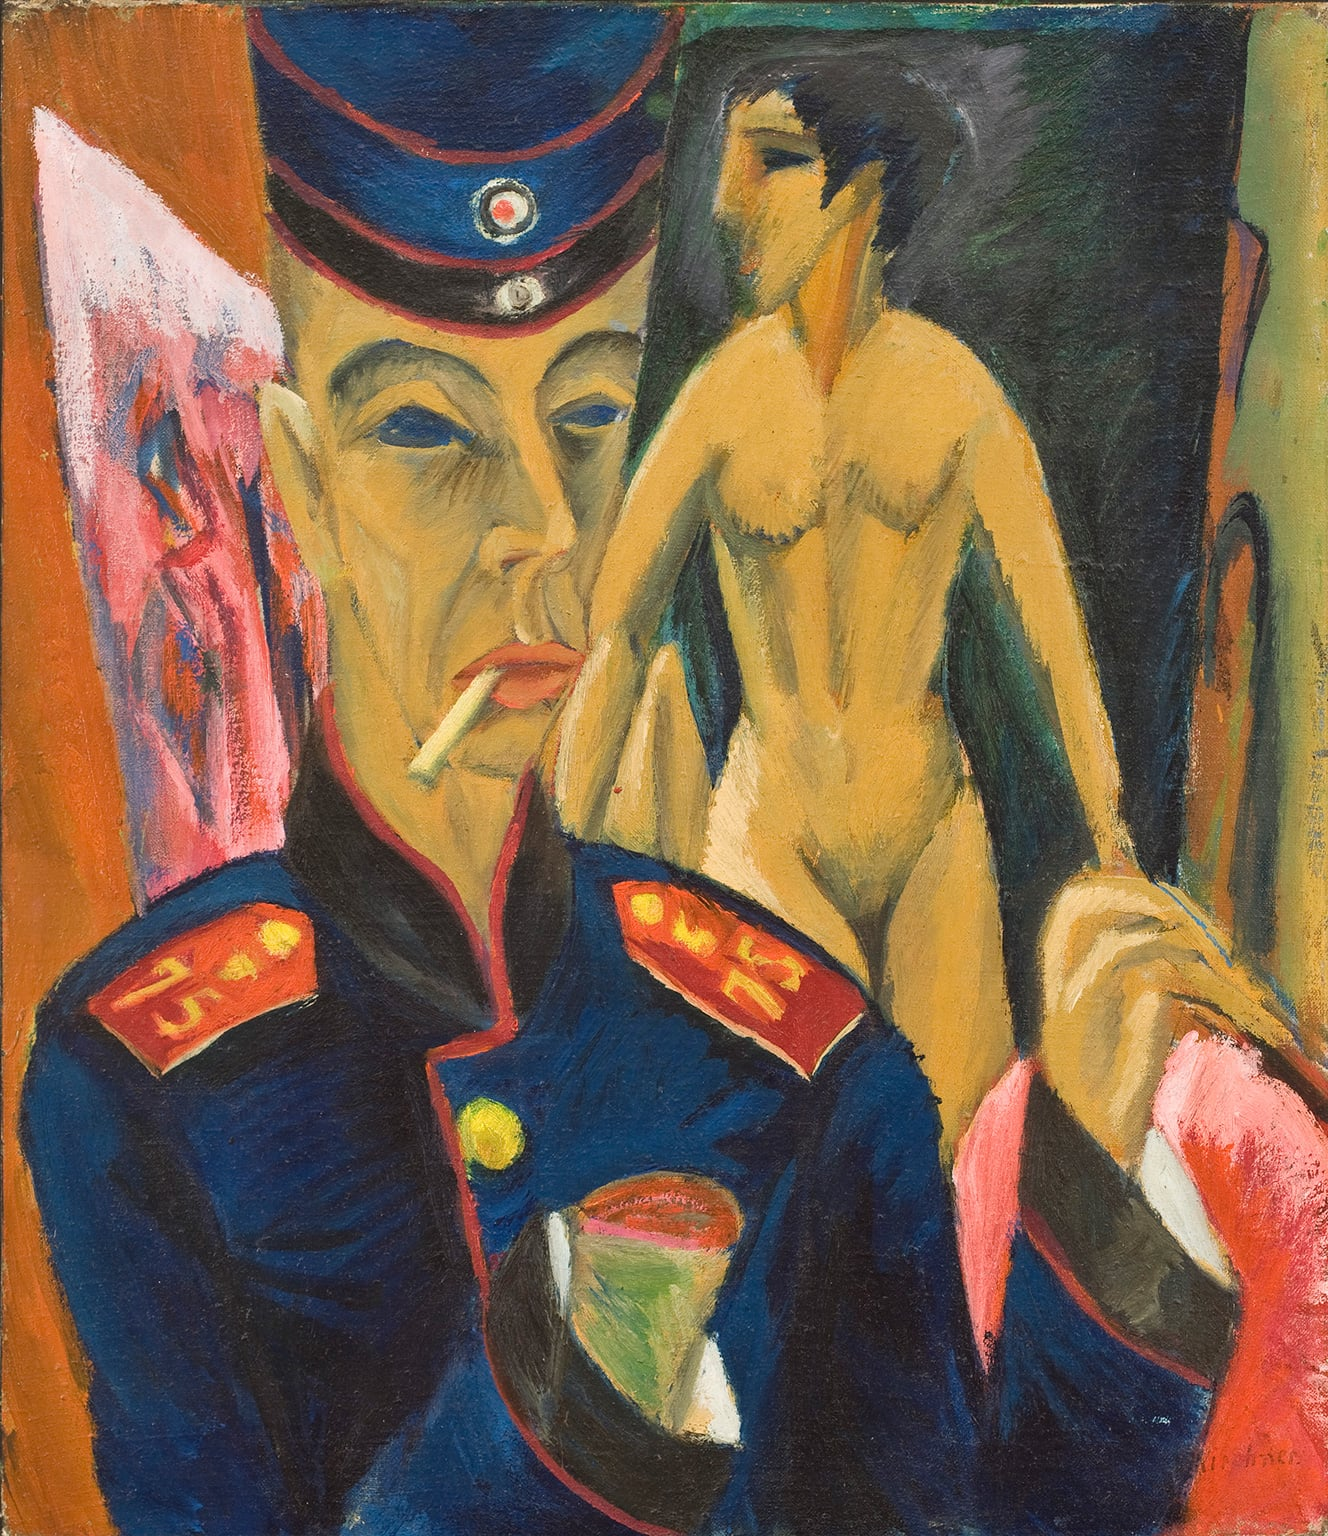 The Great war in Portraits, National Portrait Gallery, free to all - Ludwig Kirchner, Selbstbildnis als Soldat (Self-portrait as a Soldier), 1915, Copyright: Allen Memorial Art Museum, Oberlin College, Ohio